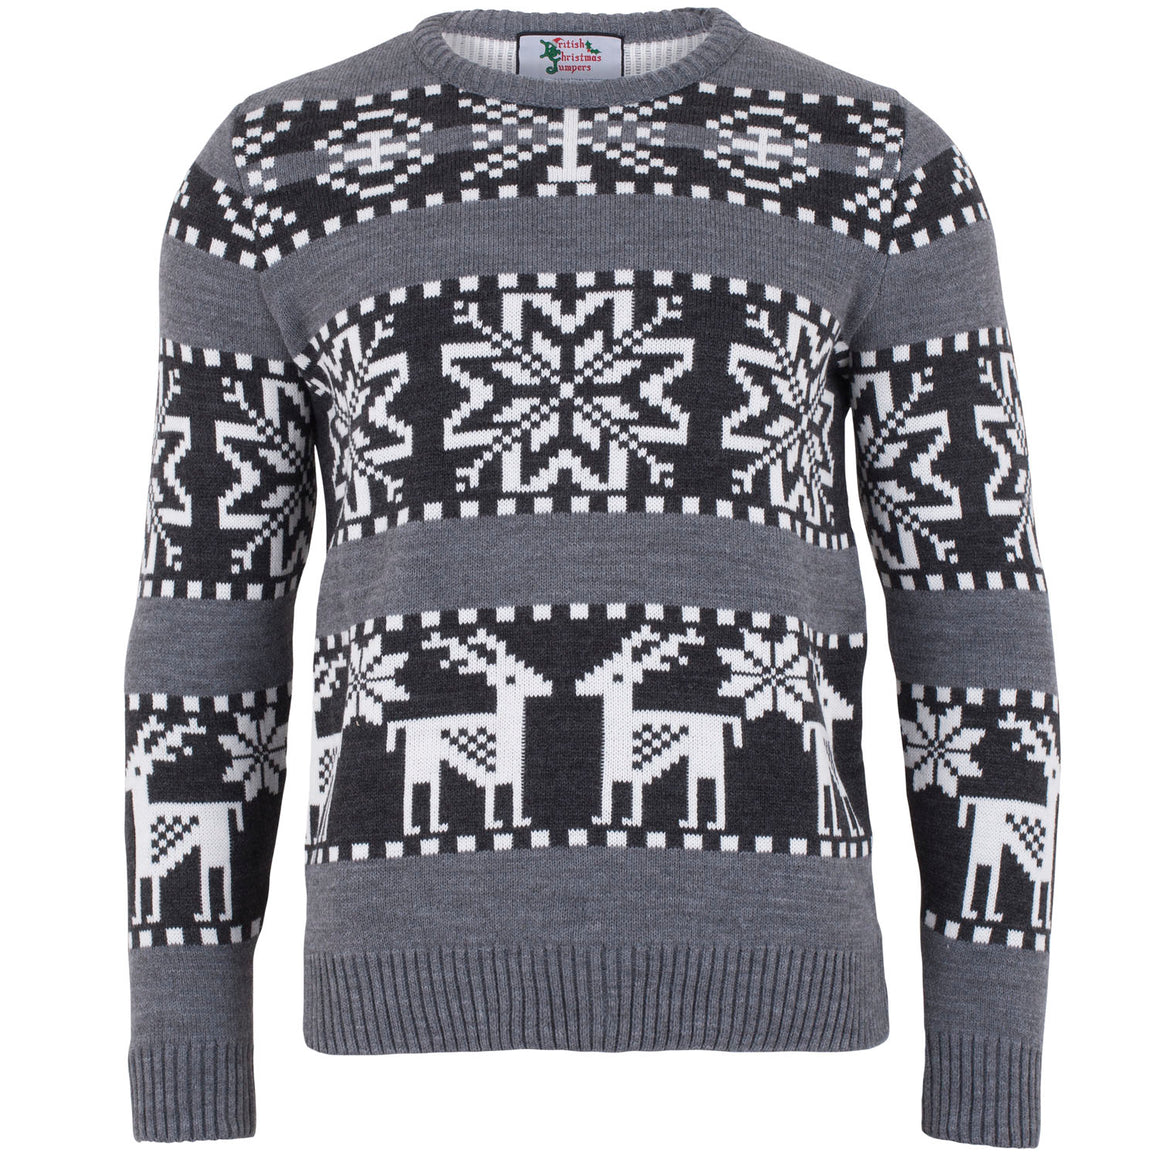 Chunky Fairisle Jumper - Mens Christmas Jumper - British Christmas Jumper